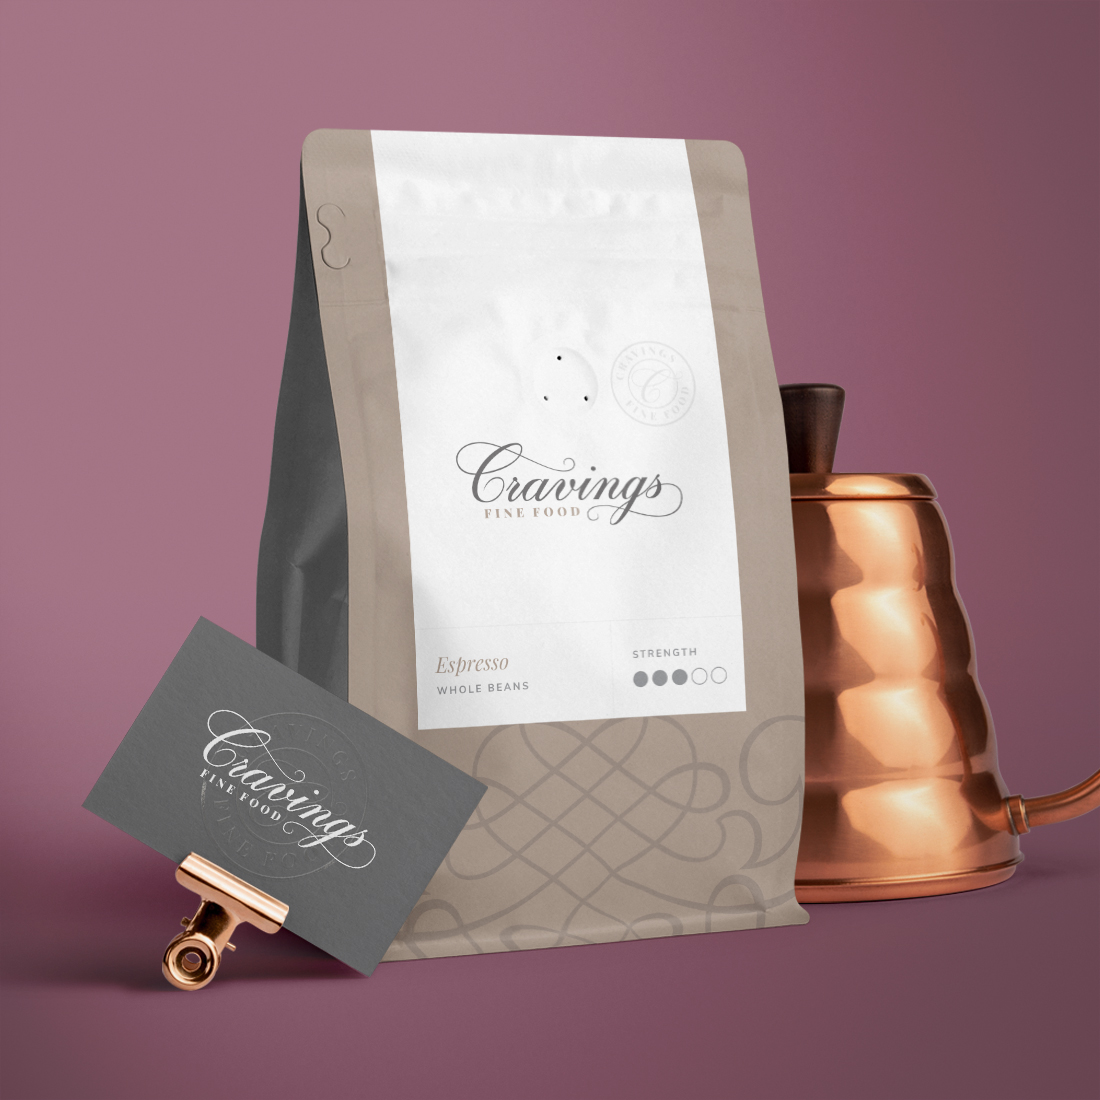 cravings fine food business card and coffee bag design for branding case study tile